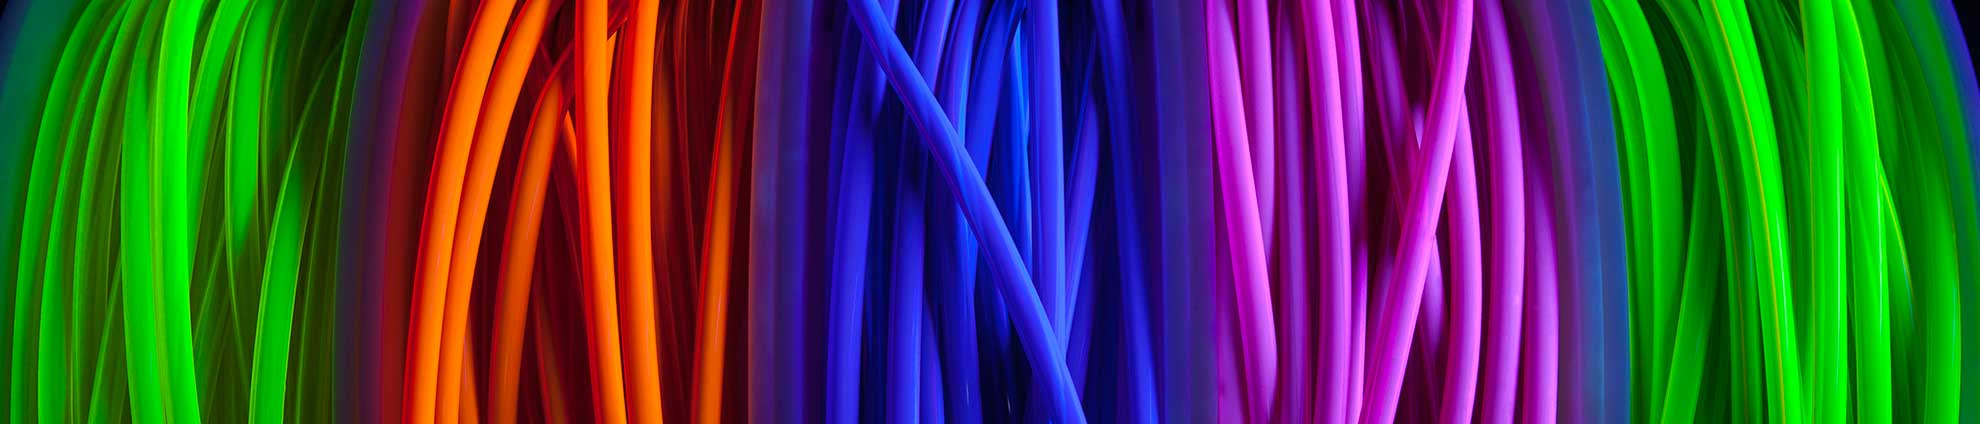 ultraviolet tube and cable